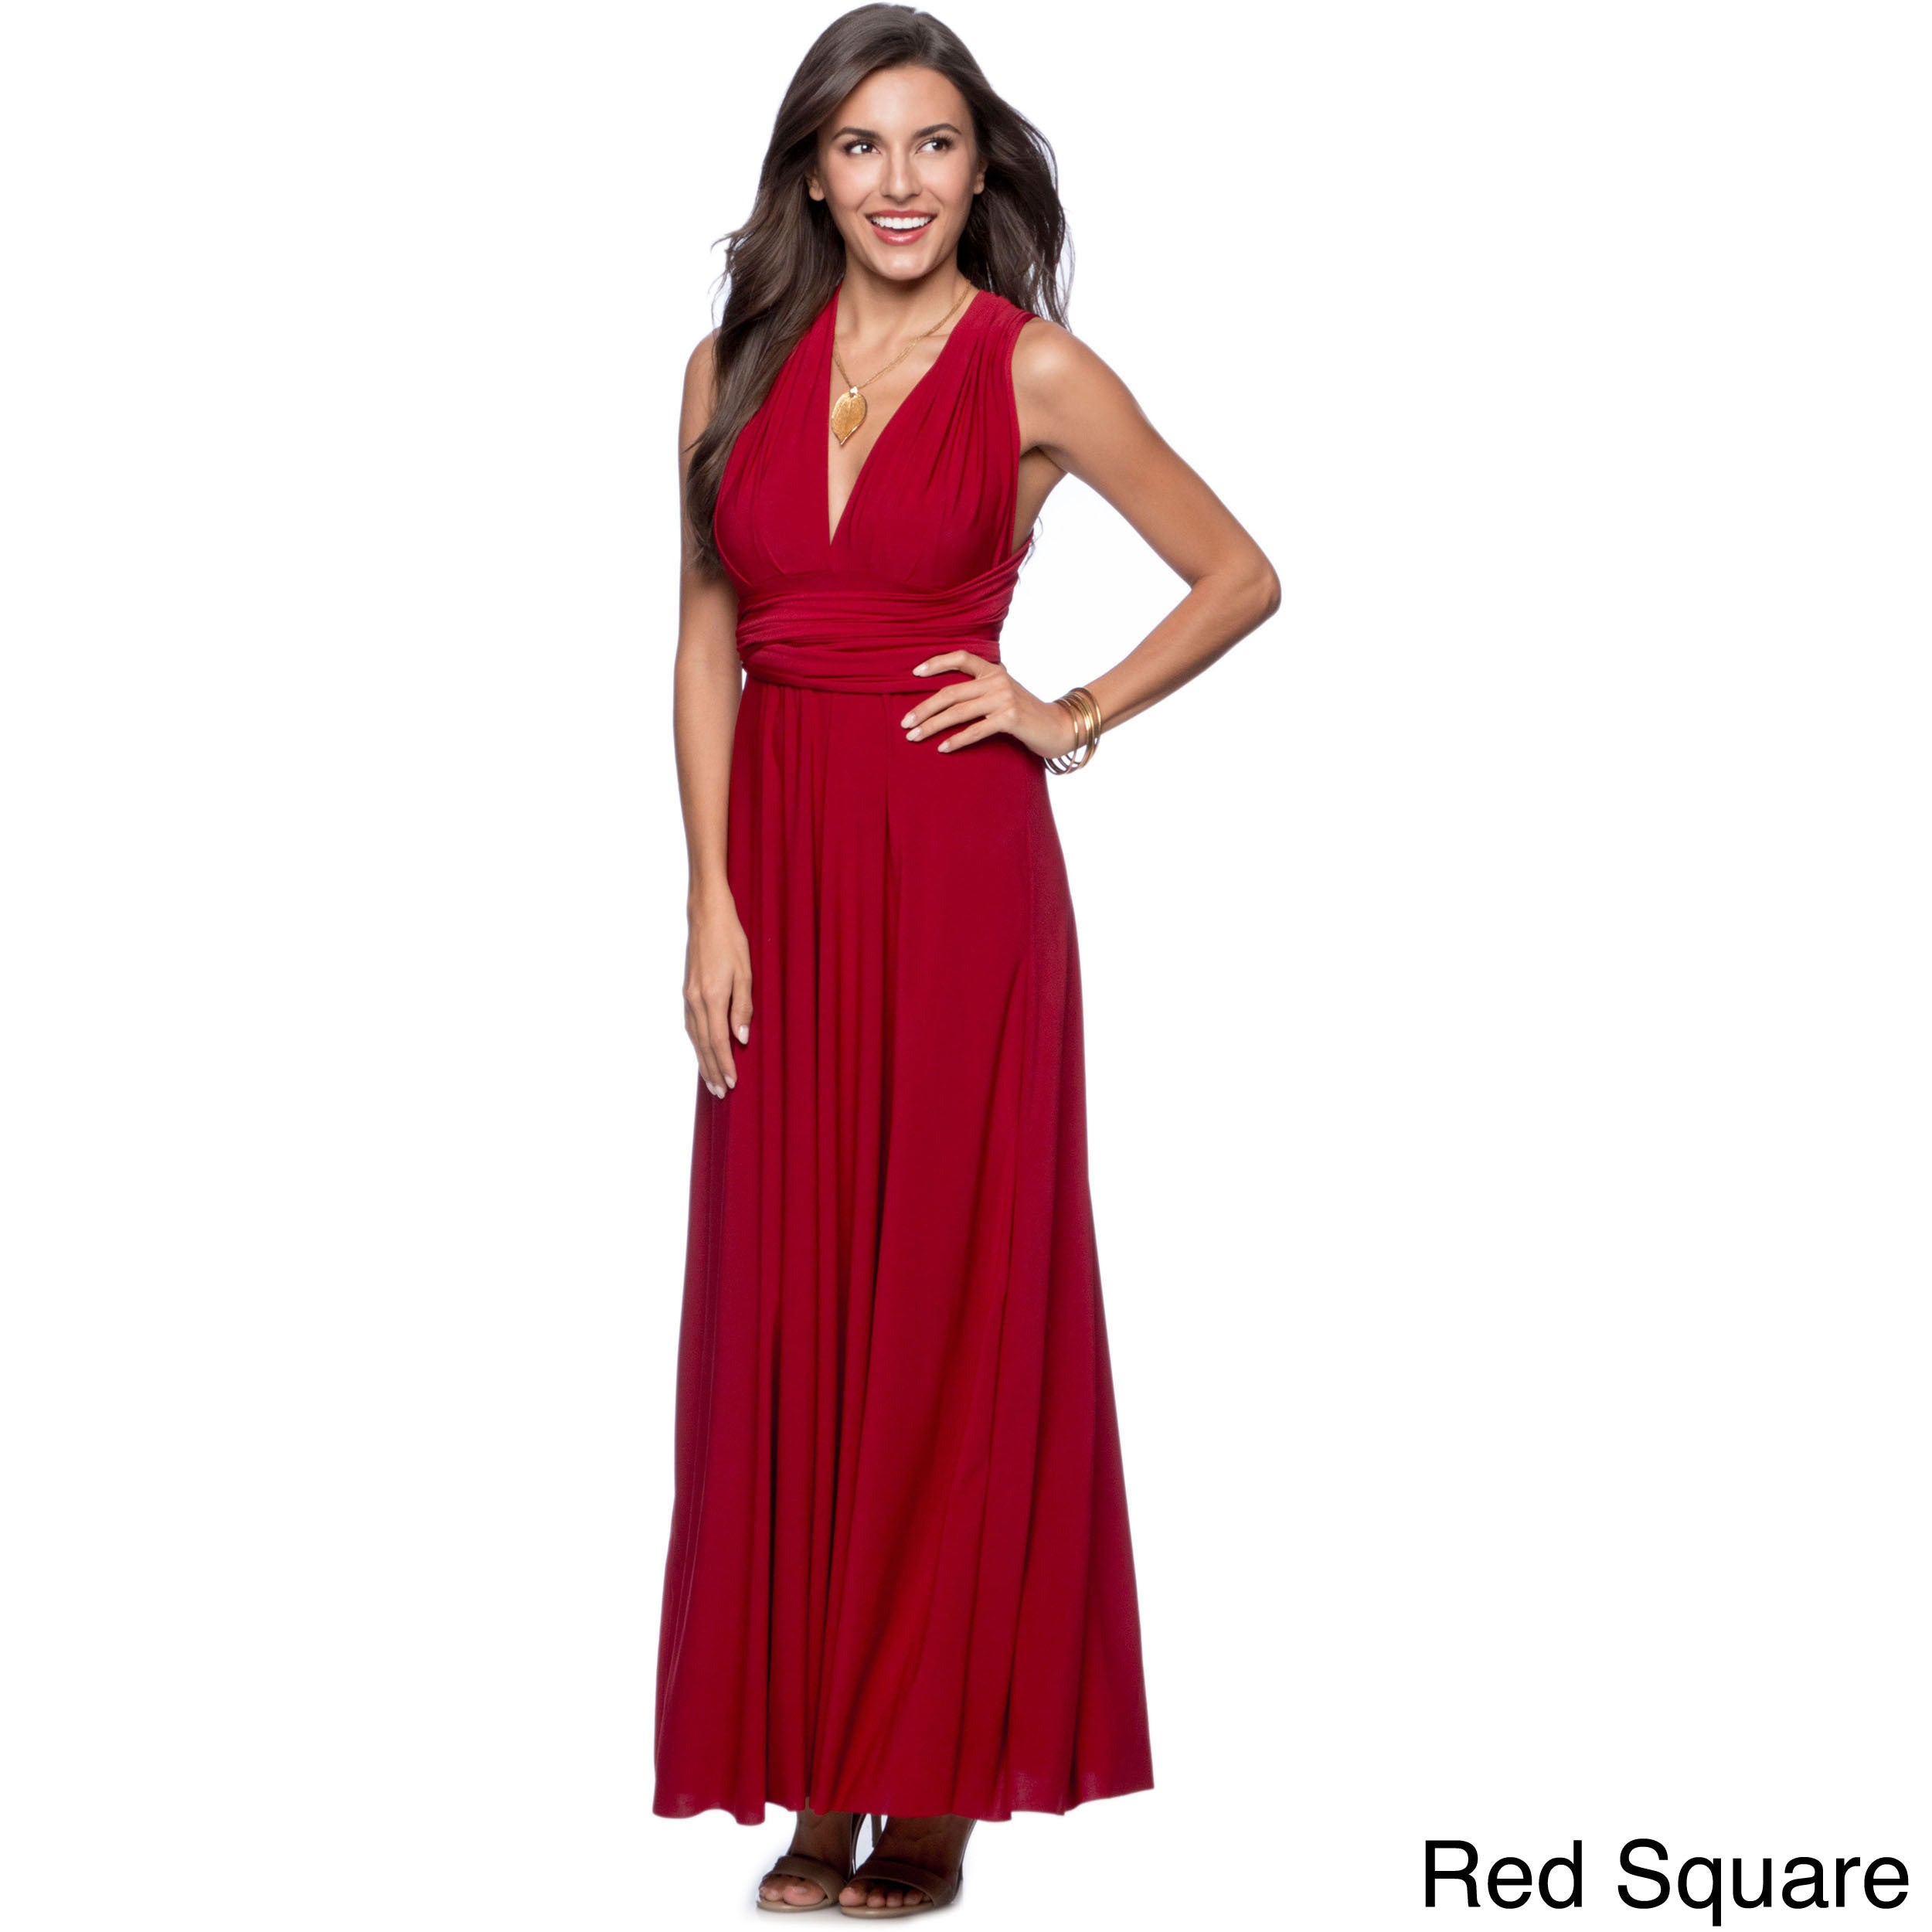 99563e91ef4 Women s Long Maxi Dress Convertible Wrap Cocktail Gown Bridesmaid Multi Way  Dresses One Size Fits 0-12